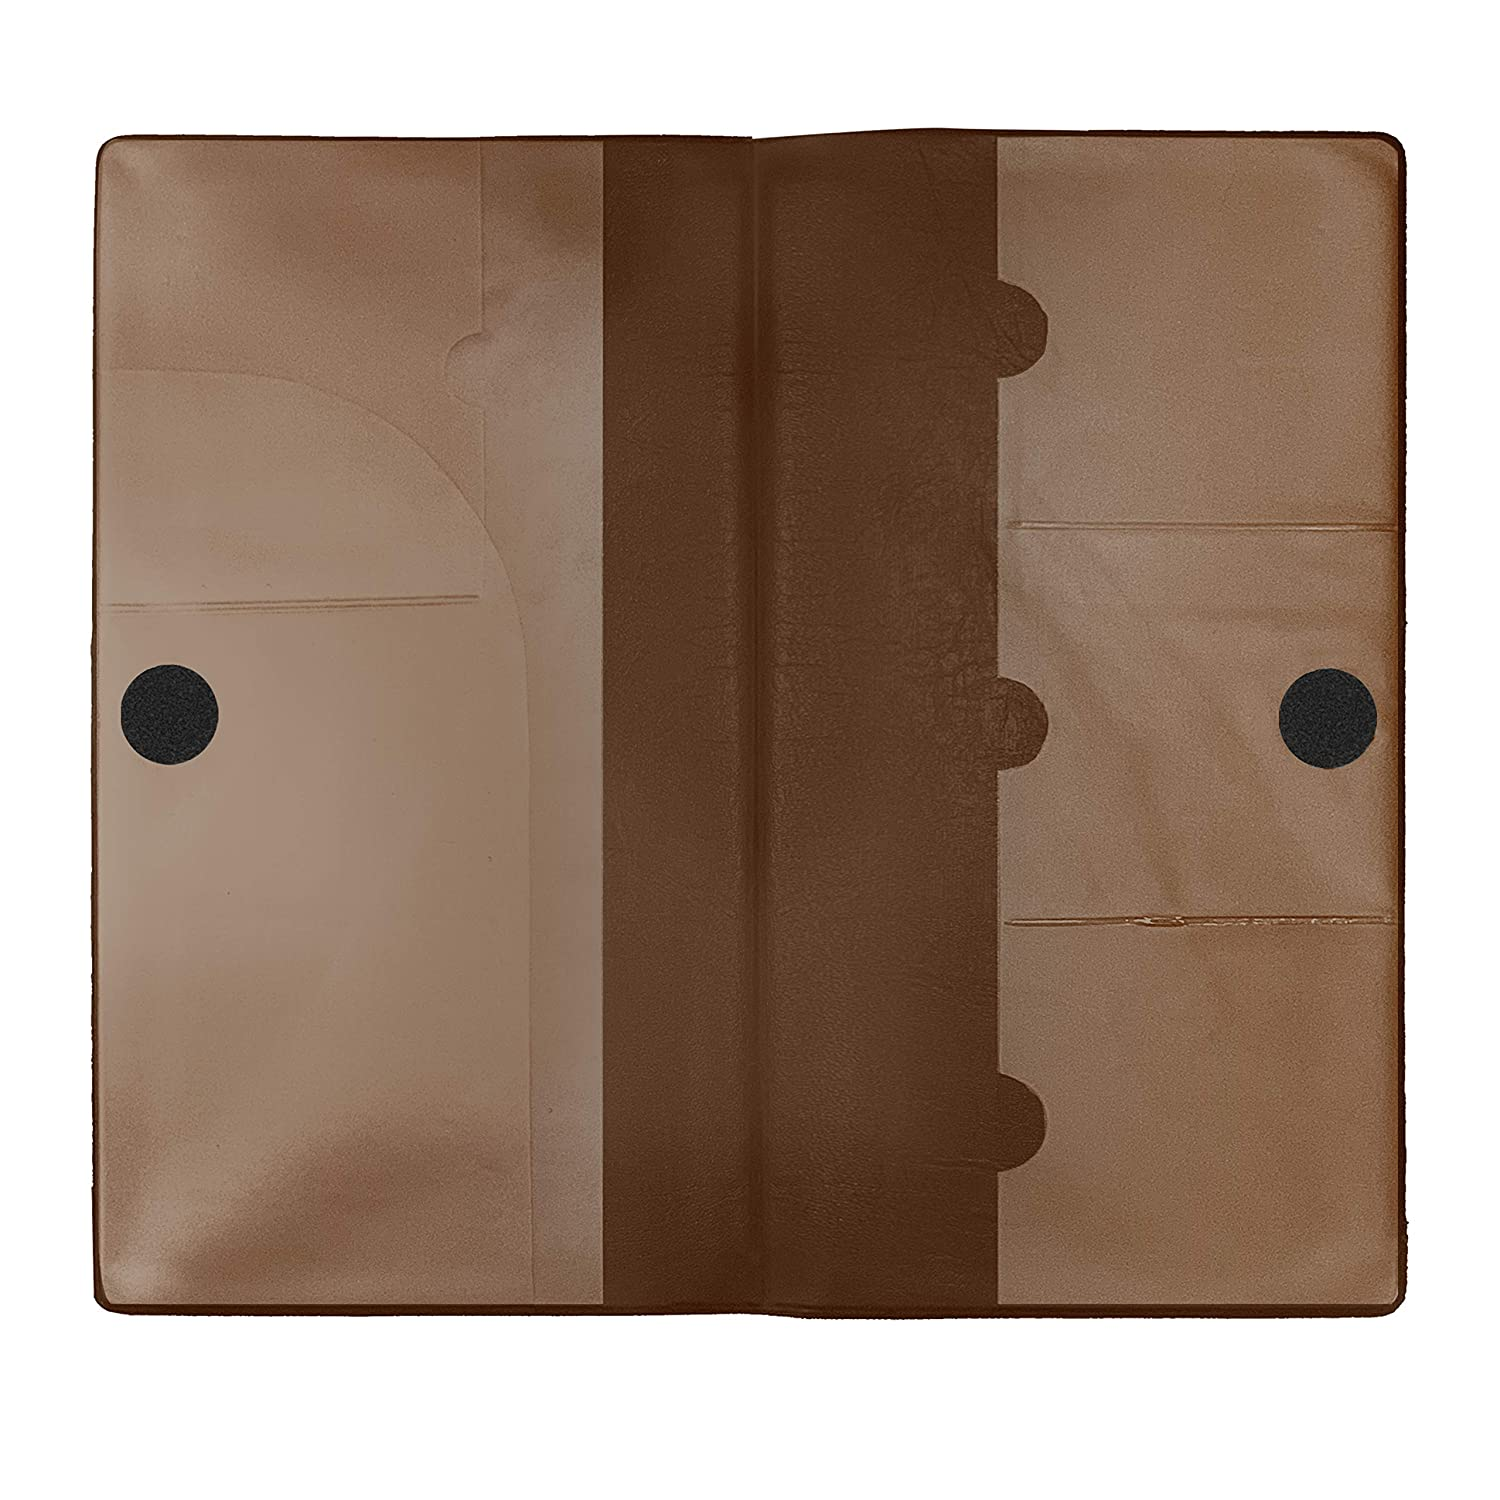 Deluxe Car Insurance and Registration Card Holder Premium Quality Automobile Essential Documents Wallet Brown